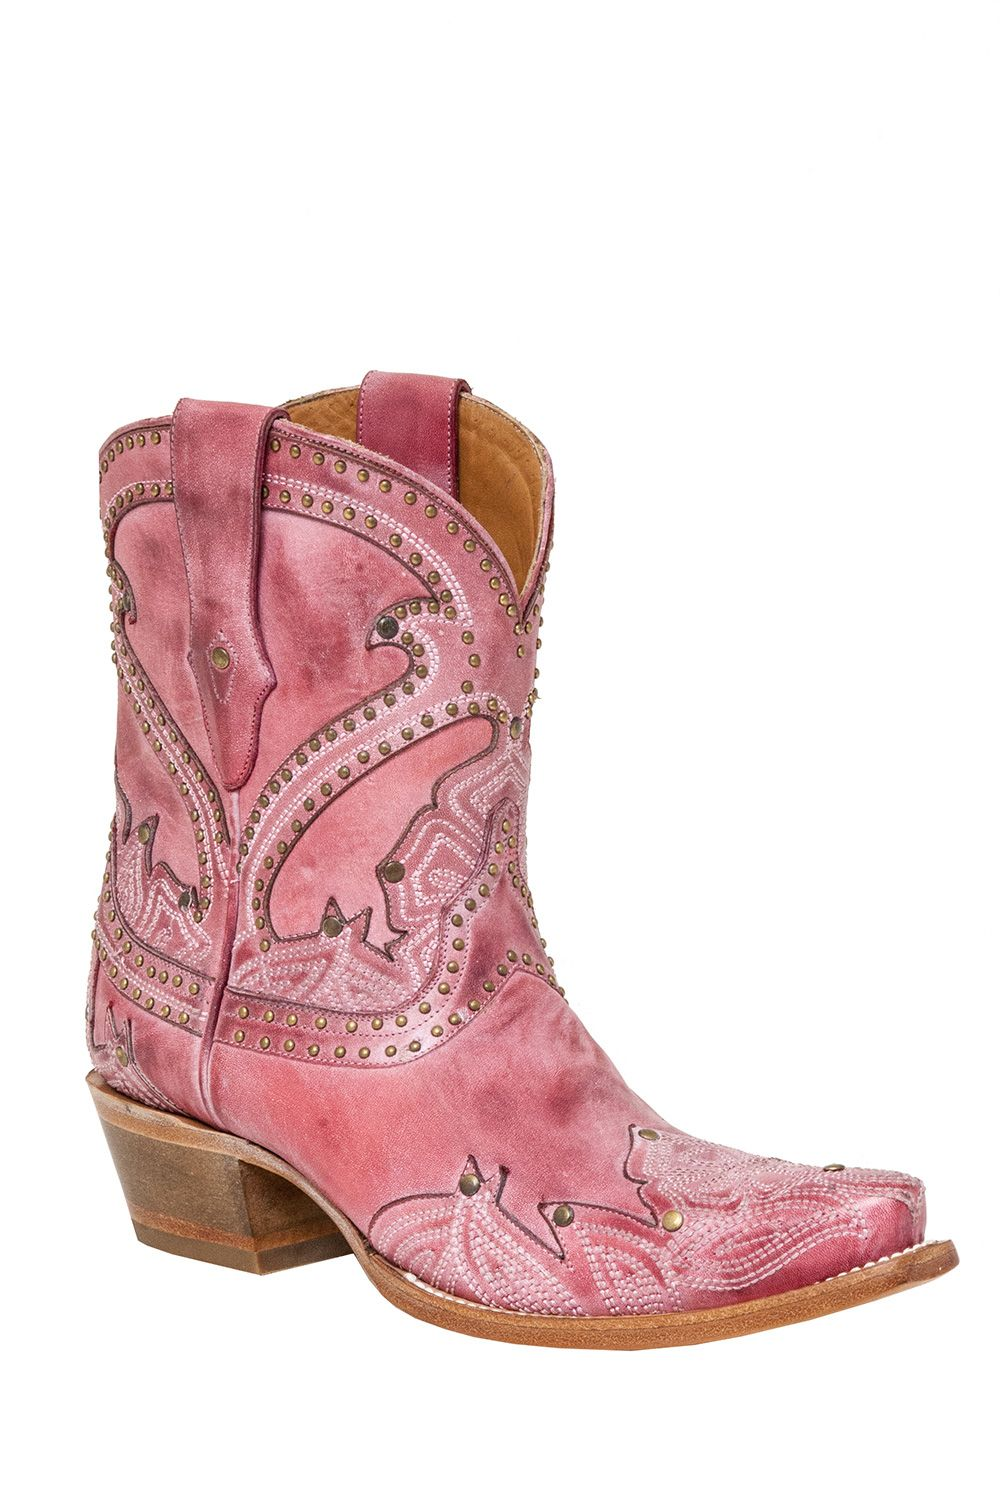 Style: M4975 Vamp: Pink Cowhide Leather Quarter: Pink Material ...